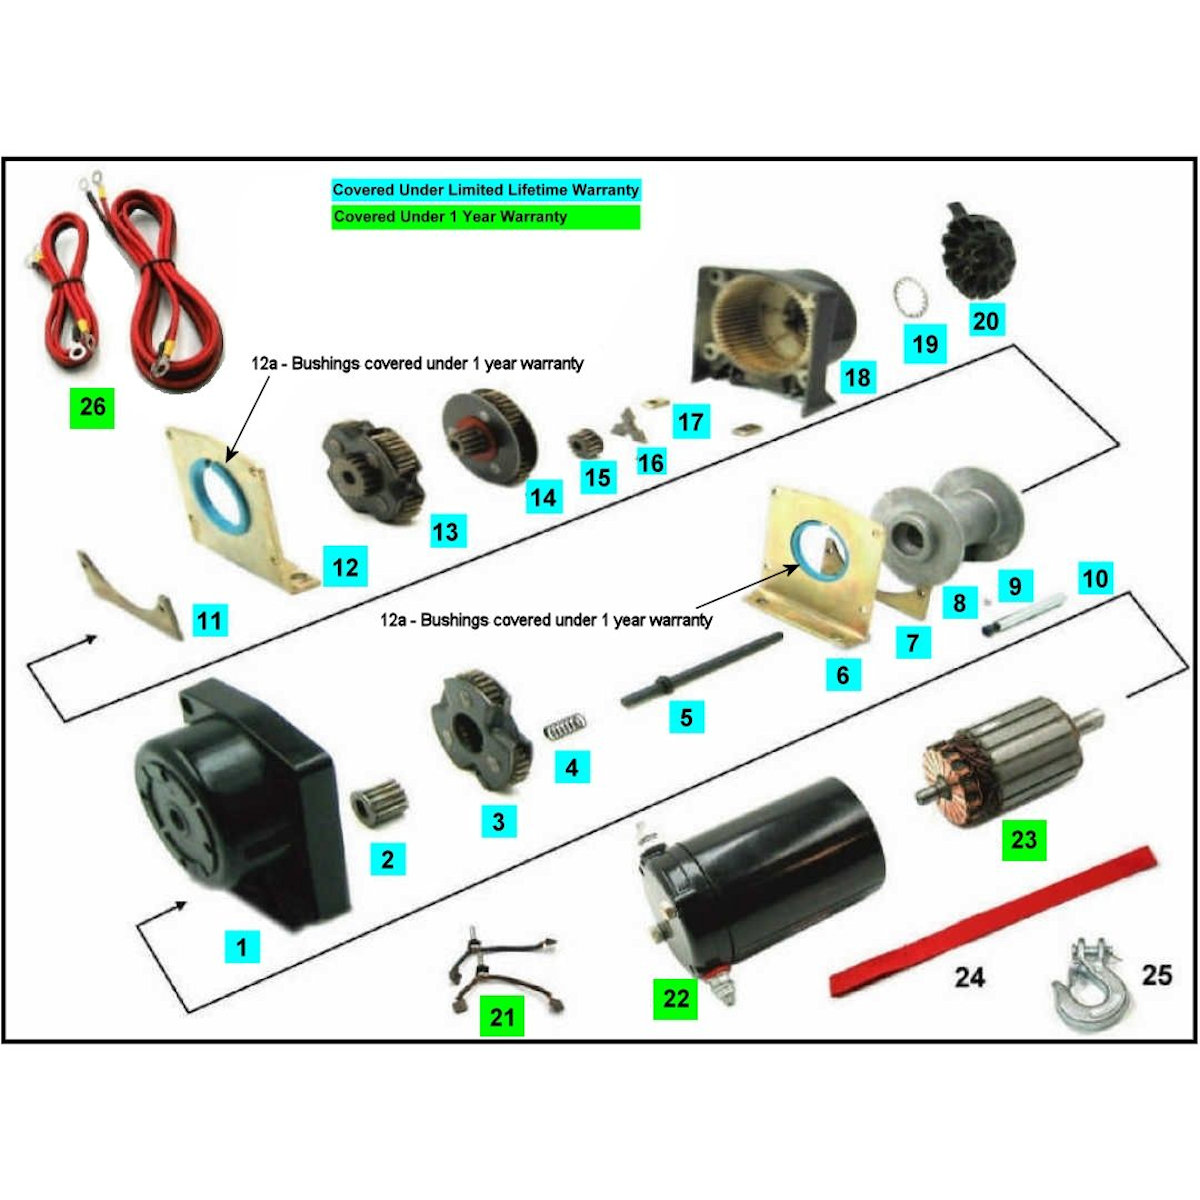 hight resolution of viper winches replacement parts construction winch diagram atv winch diagram